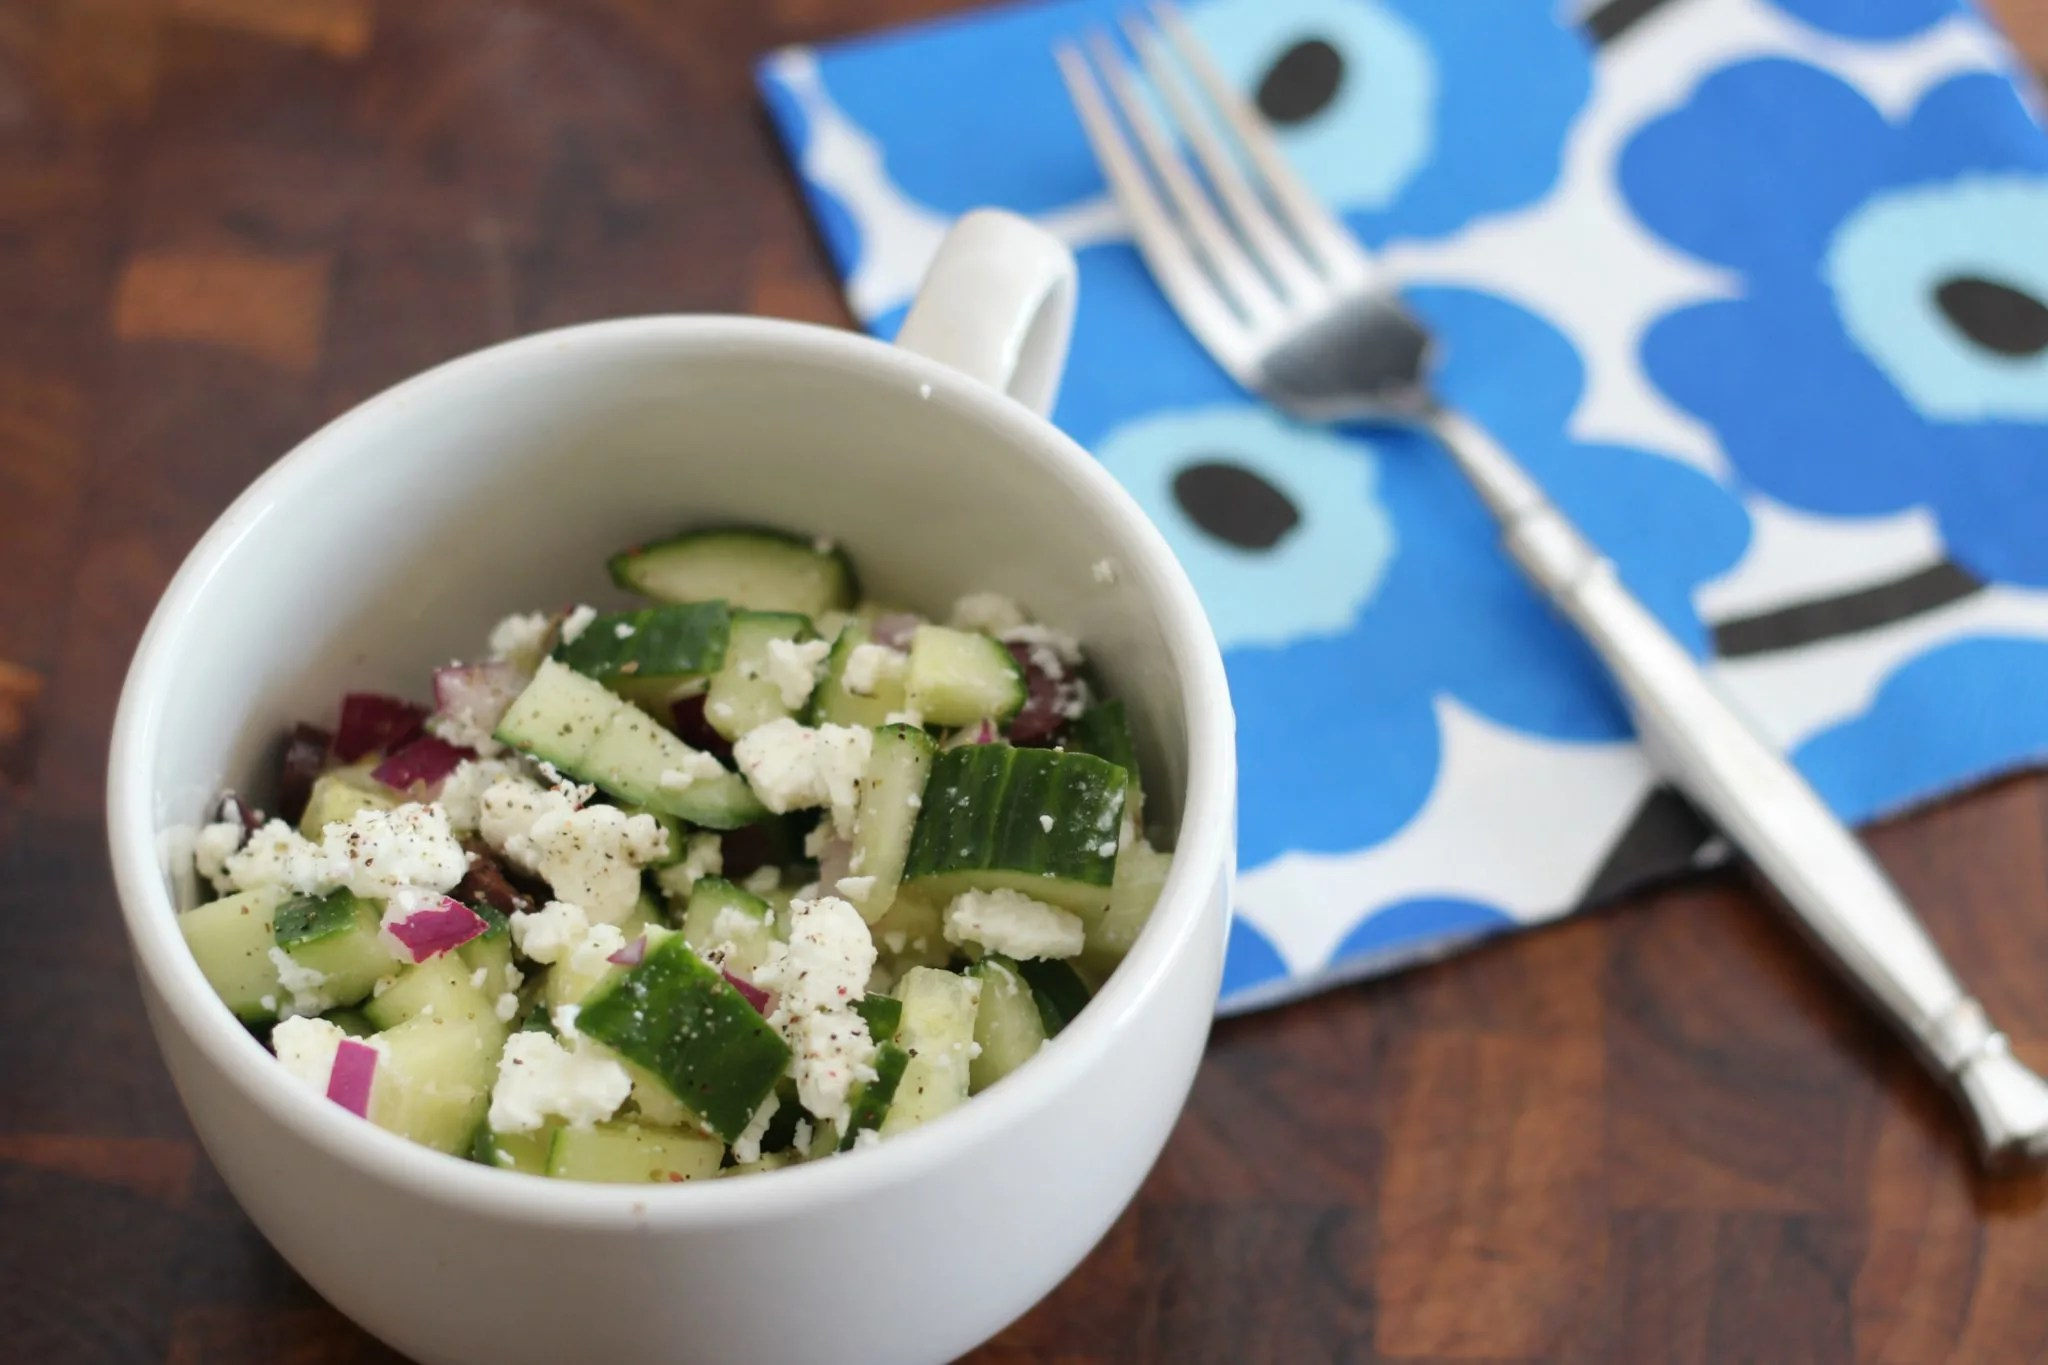 This light and tasty cucumber, olive and feta salad makes for a delicious lunch.